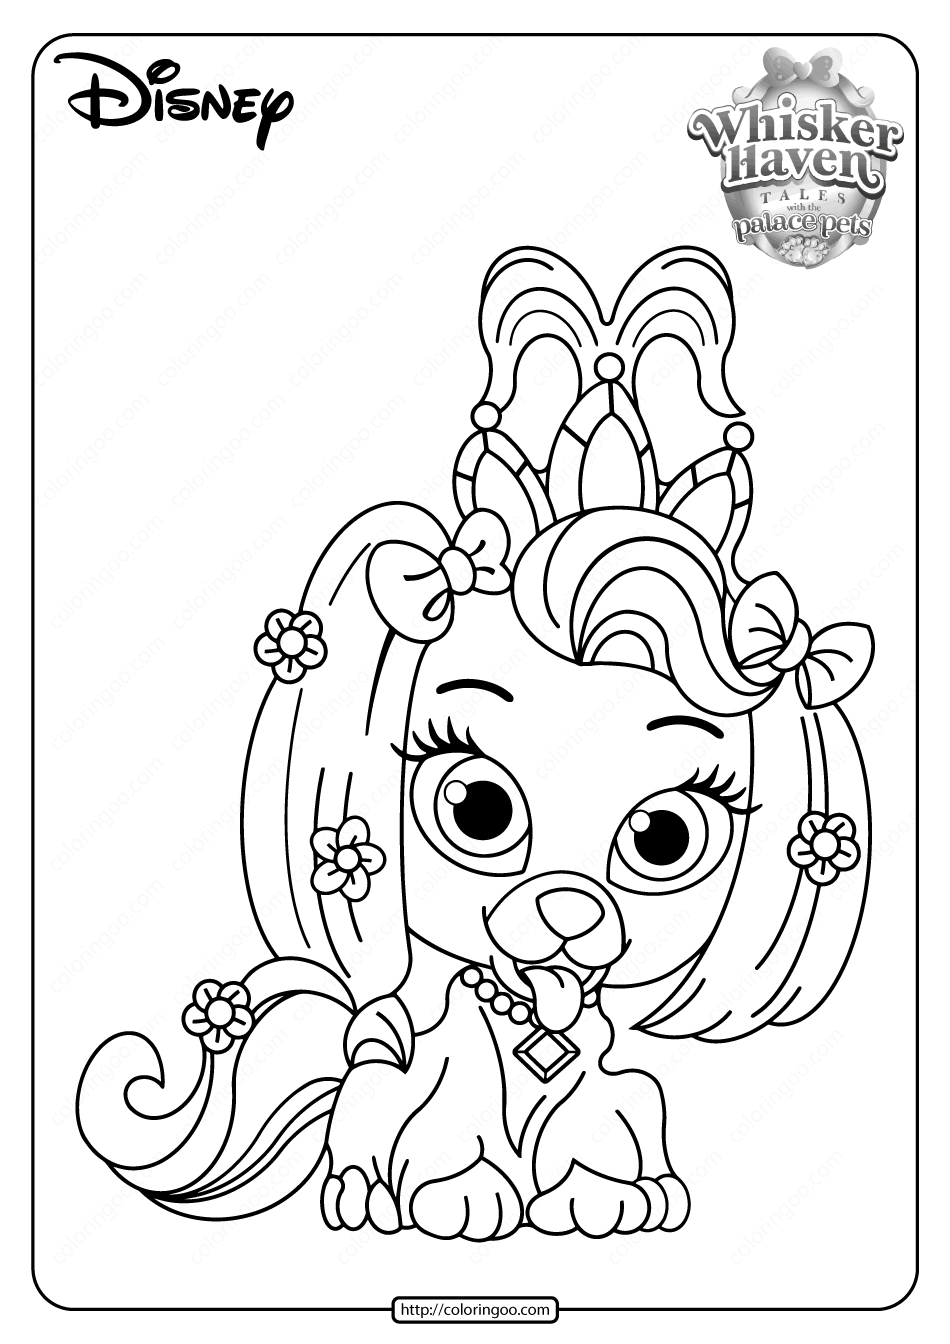 palace pets pictures printable palace pets macaron pdf coloring pages pictures pets palace